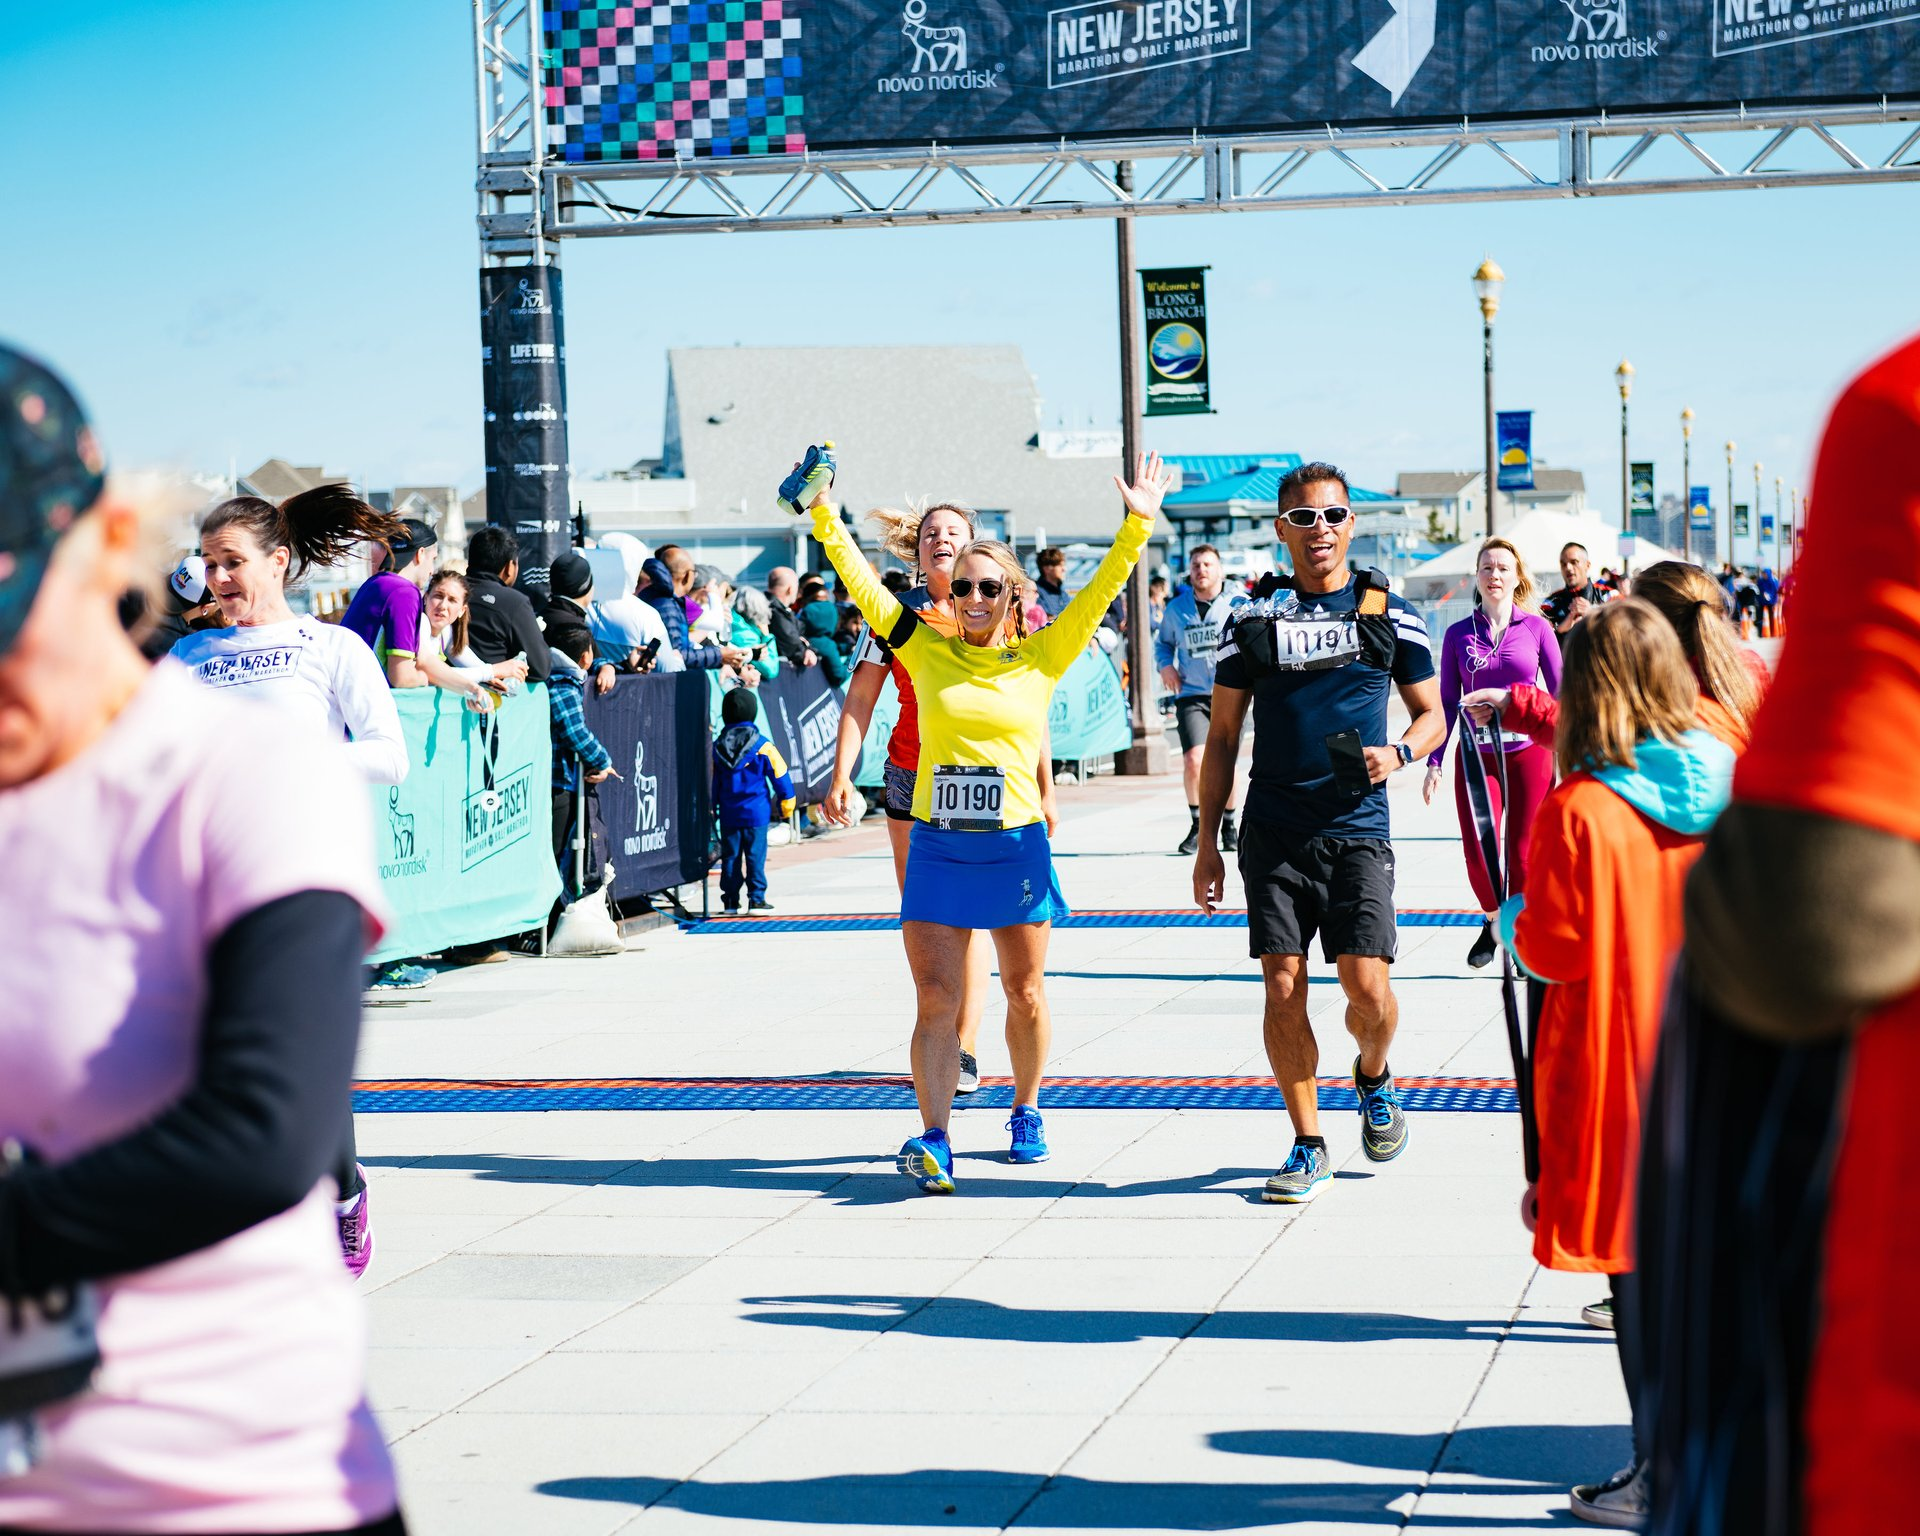 Best time to see New Jersey Marathon & Half Marathon in New Jersey 2020